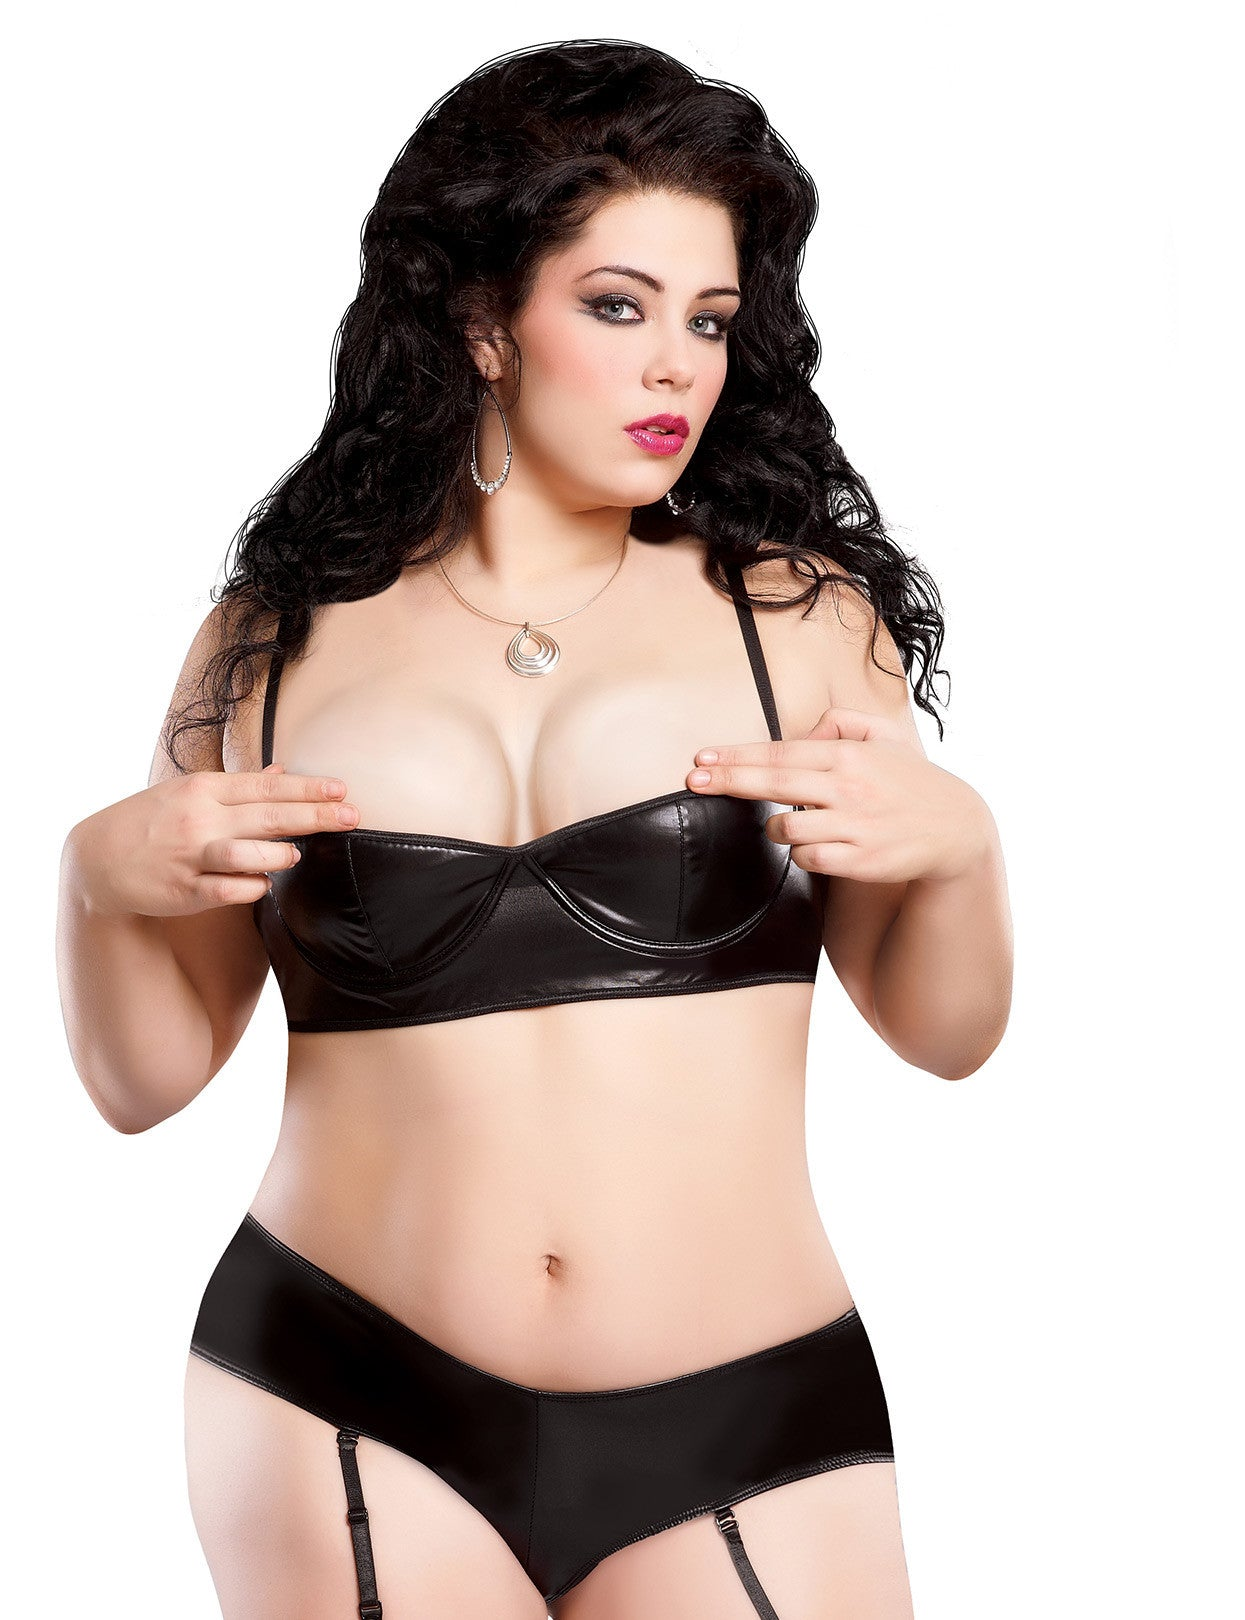 73badff12f Plus Size Liquid Onyx Half Cup Bra and Gartered Boy Short Set - just damn  sexy